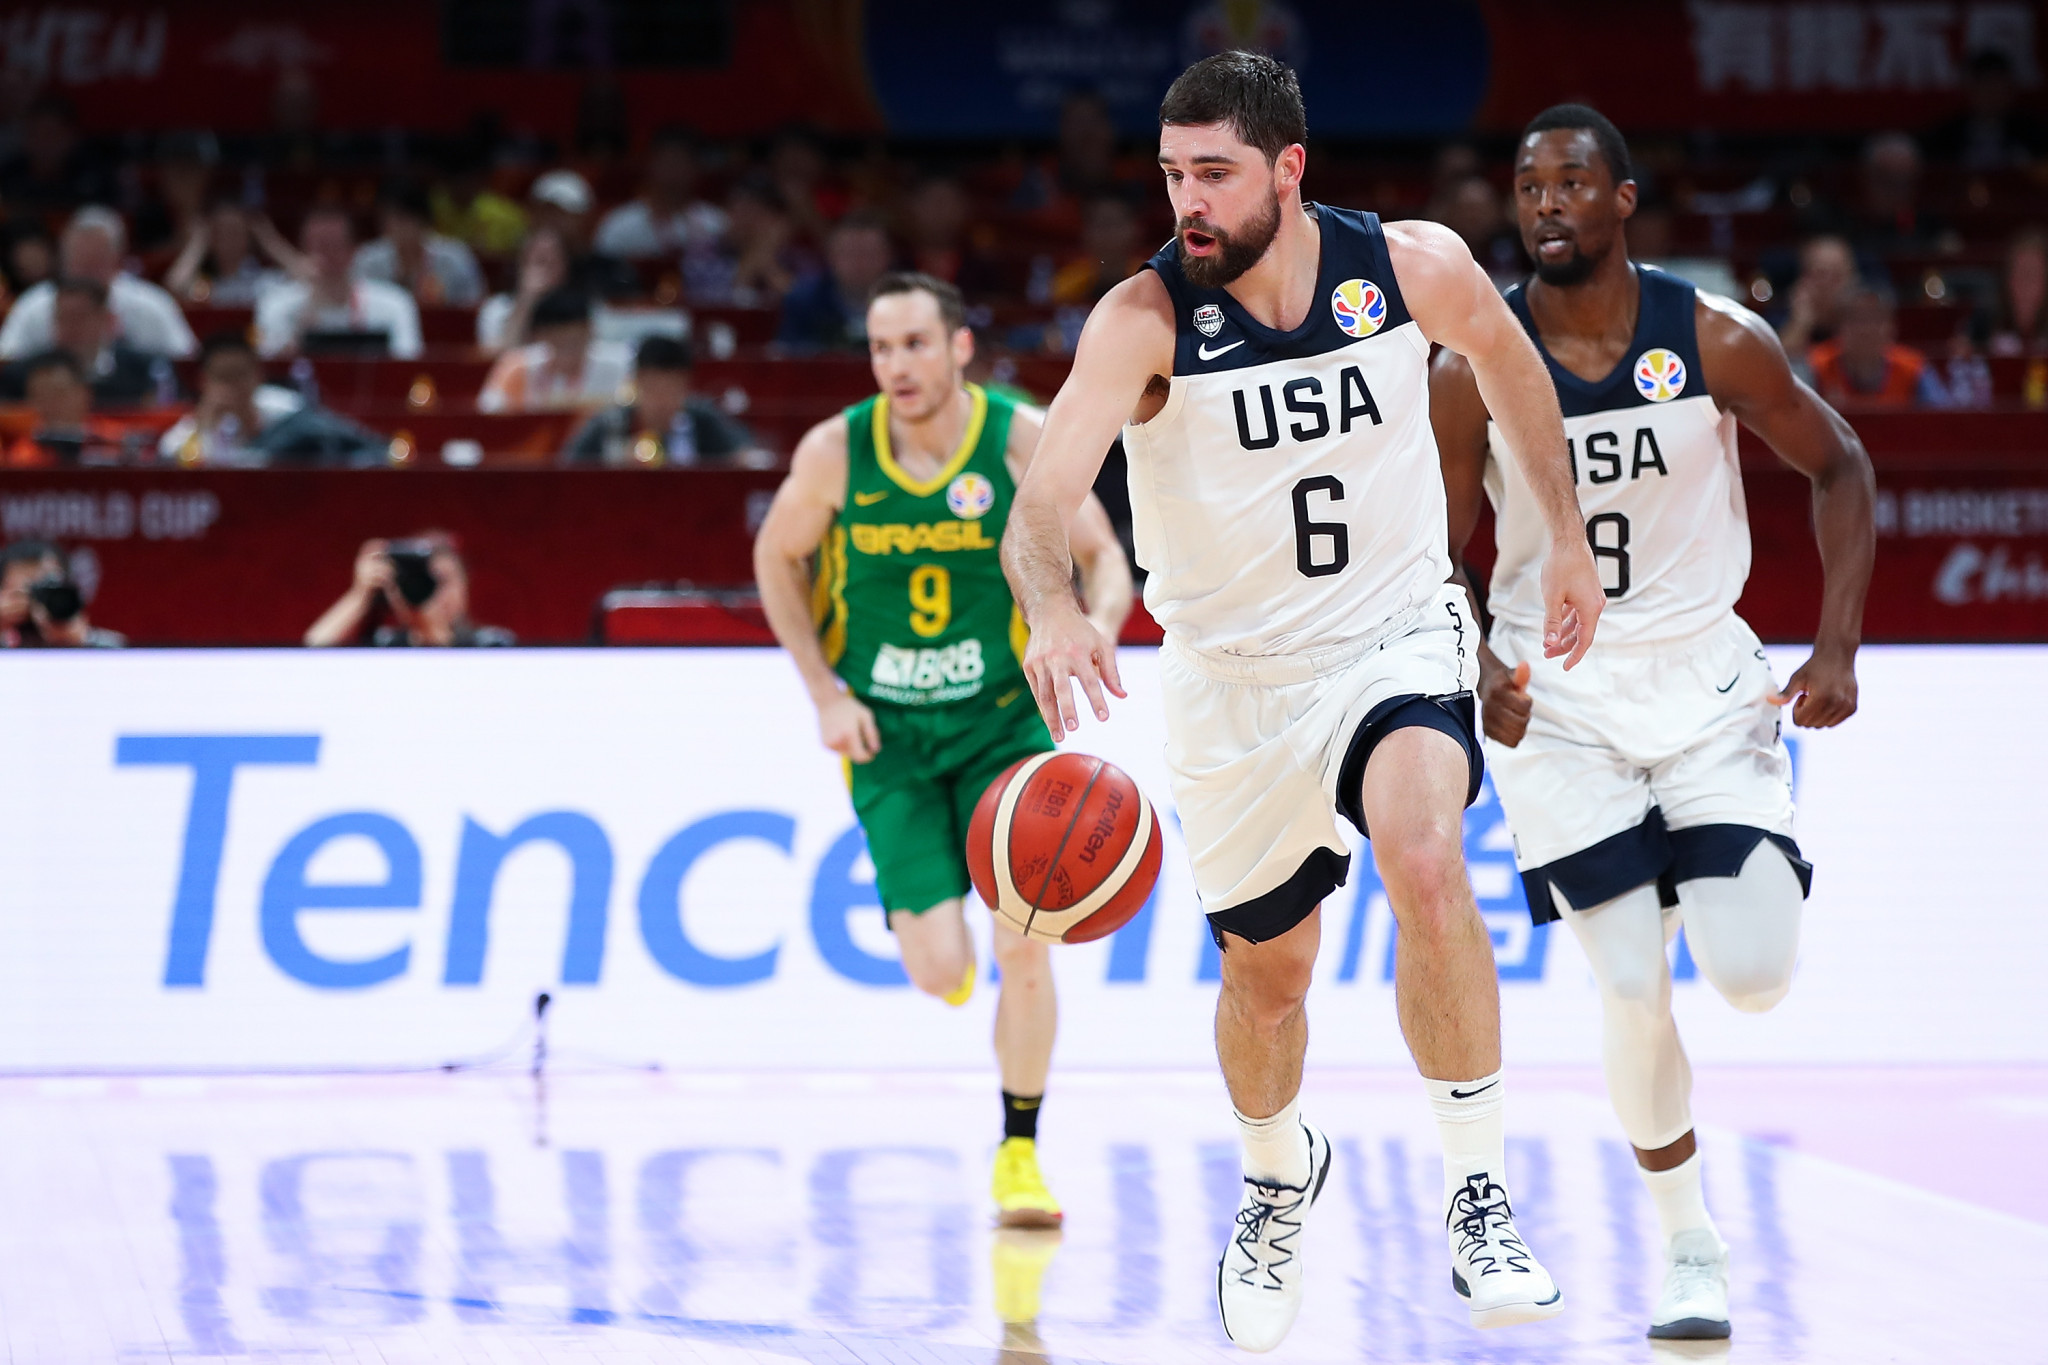 Usa Out Of World Cup 2020.Coach Popovich Delighted After Us Men S Basketball Team